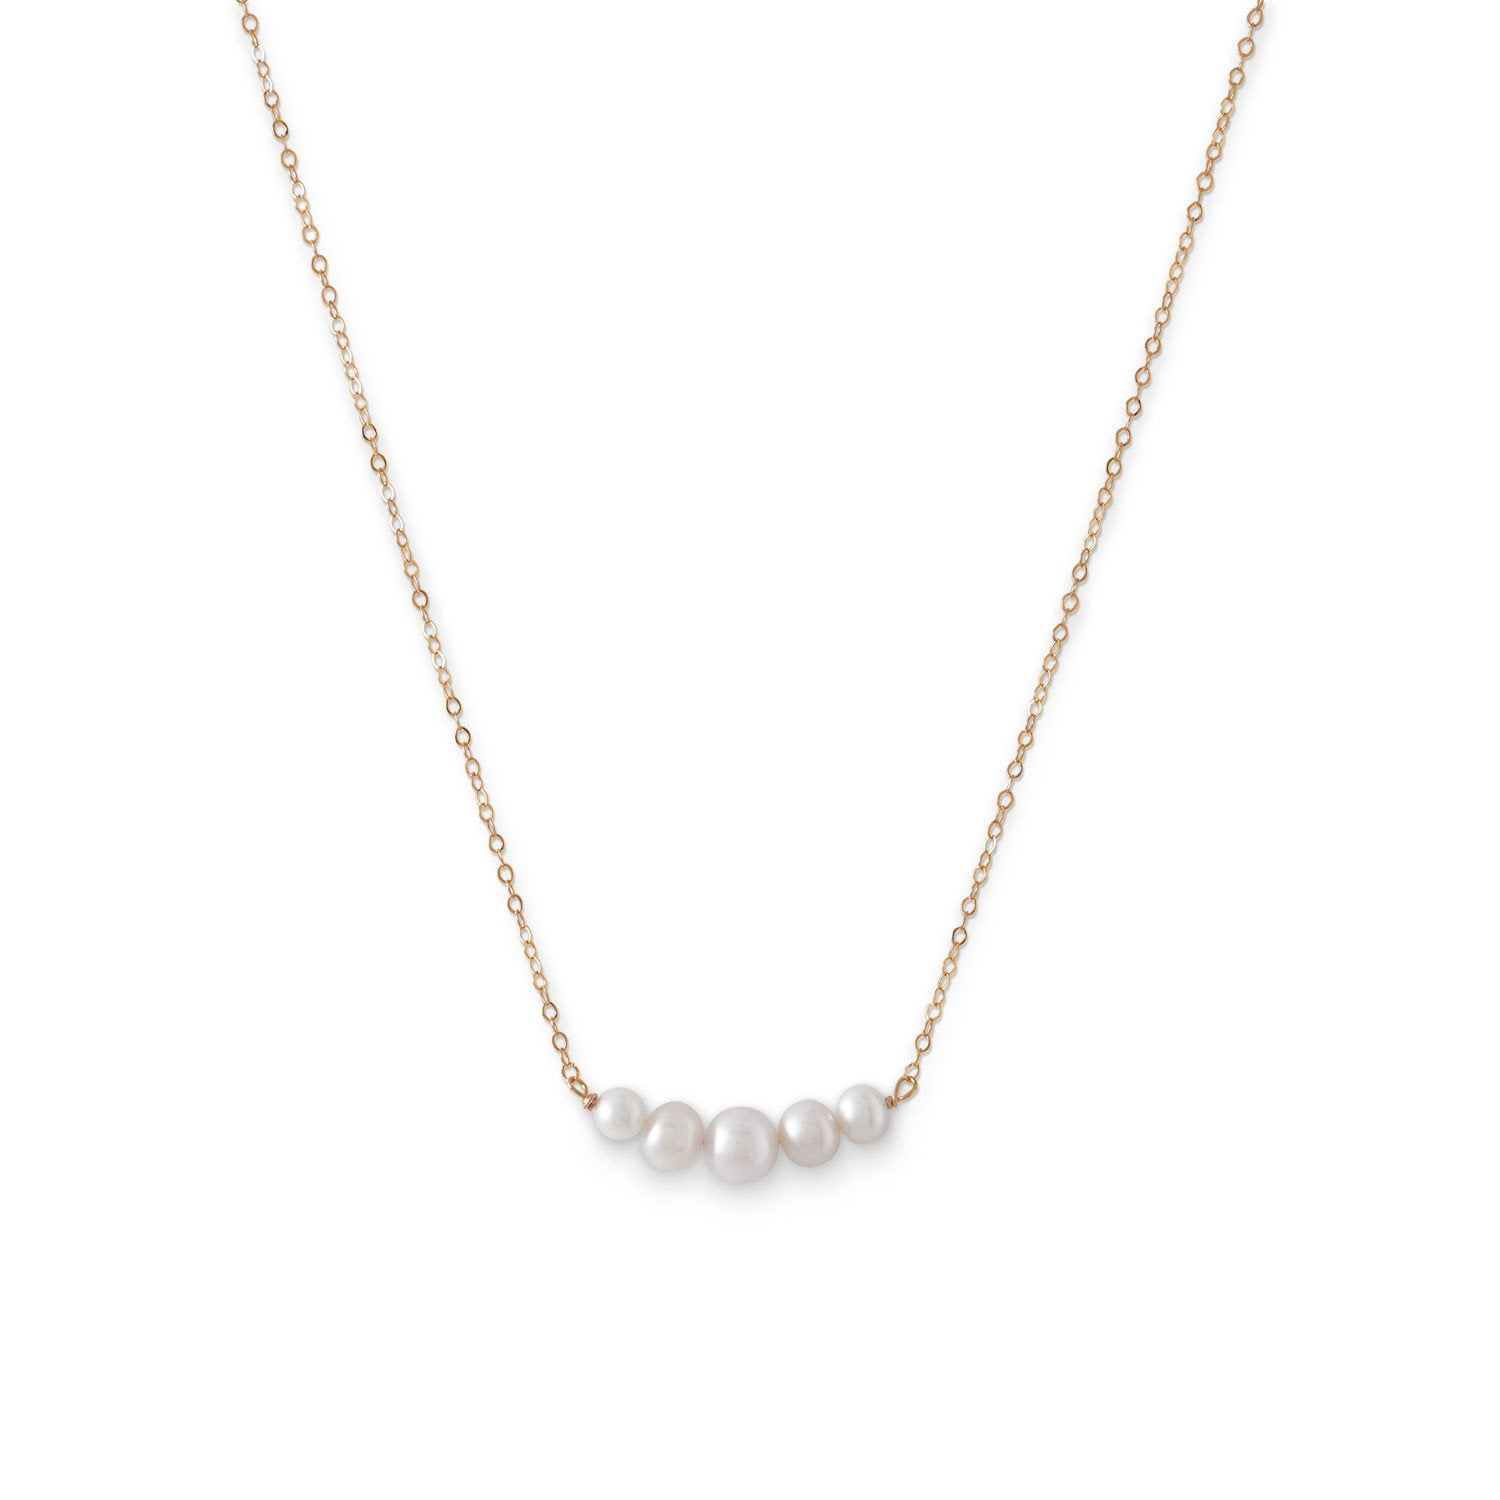 14 Karat Gold Necklace with 5 Cultured Freshwater Pearls - Rocky Mt. Discount Outlet